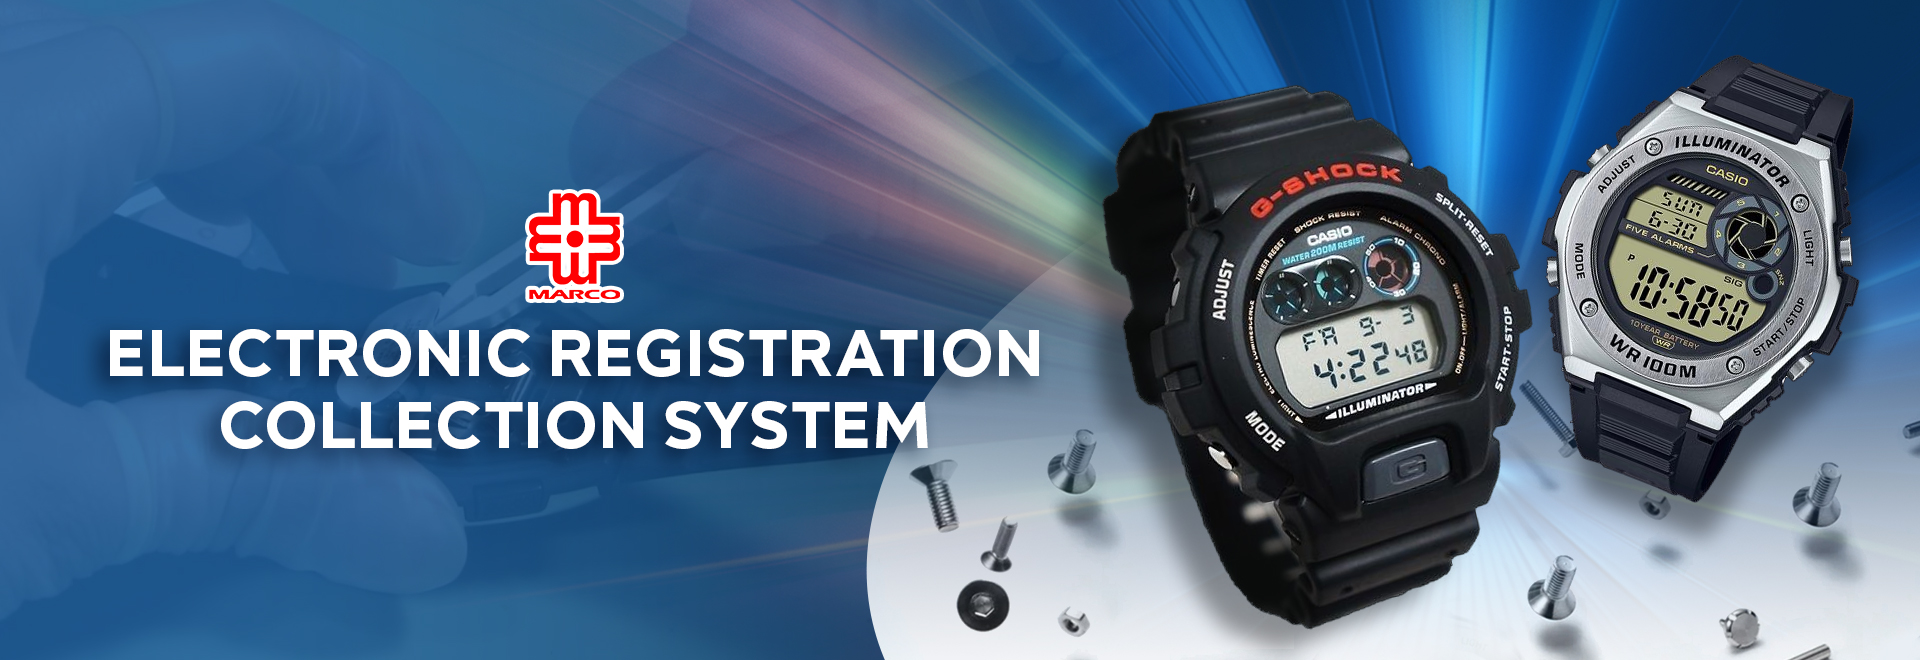 Electronic Registration Collection System